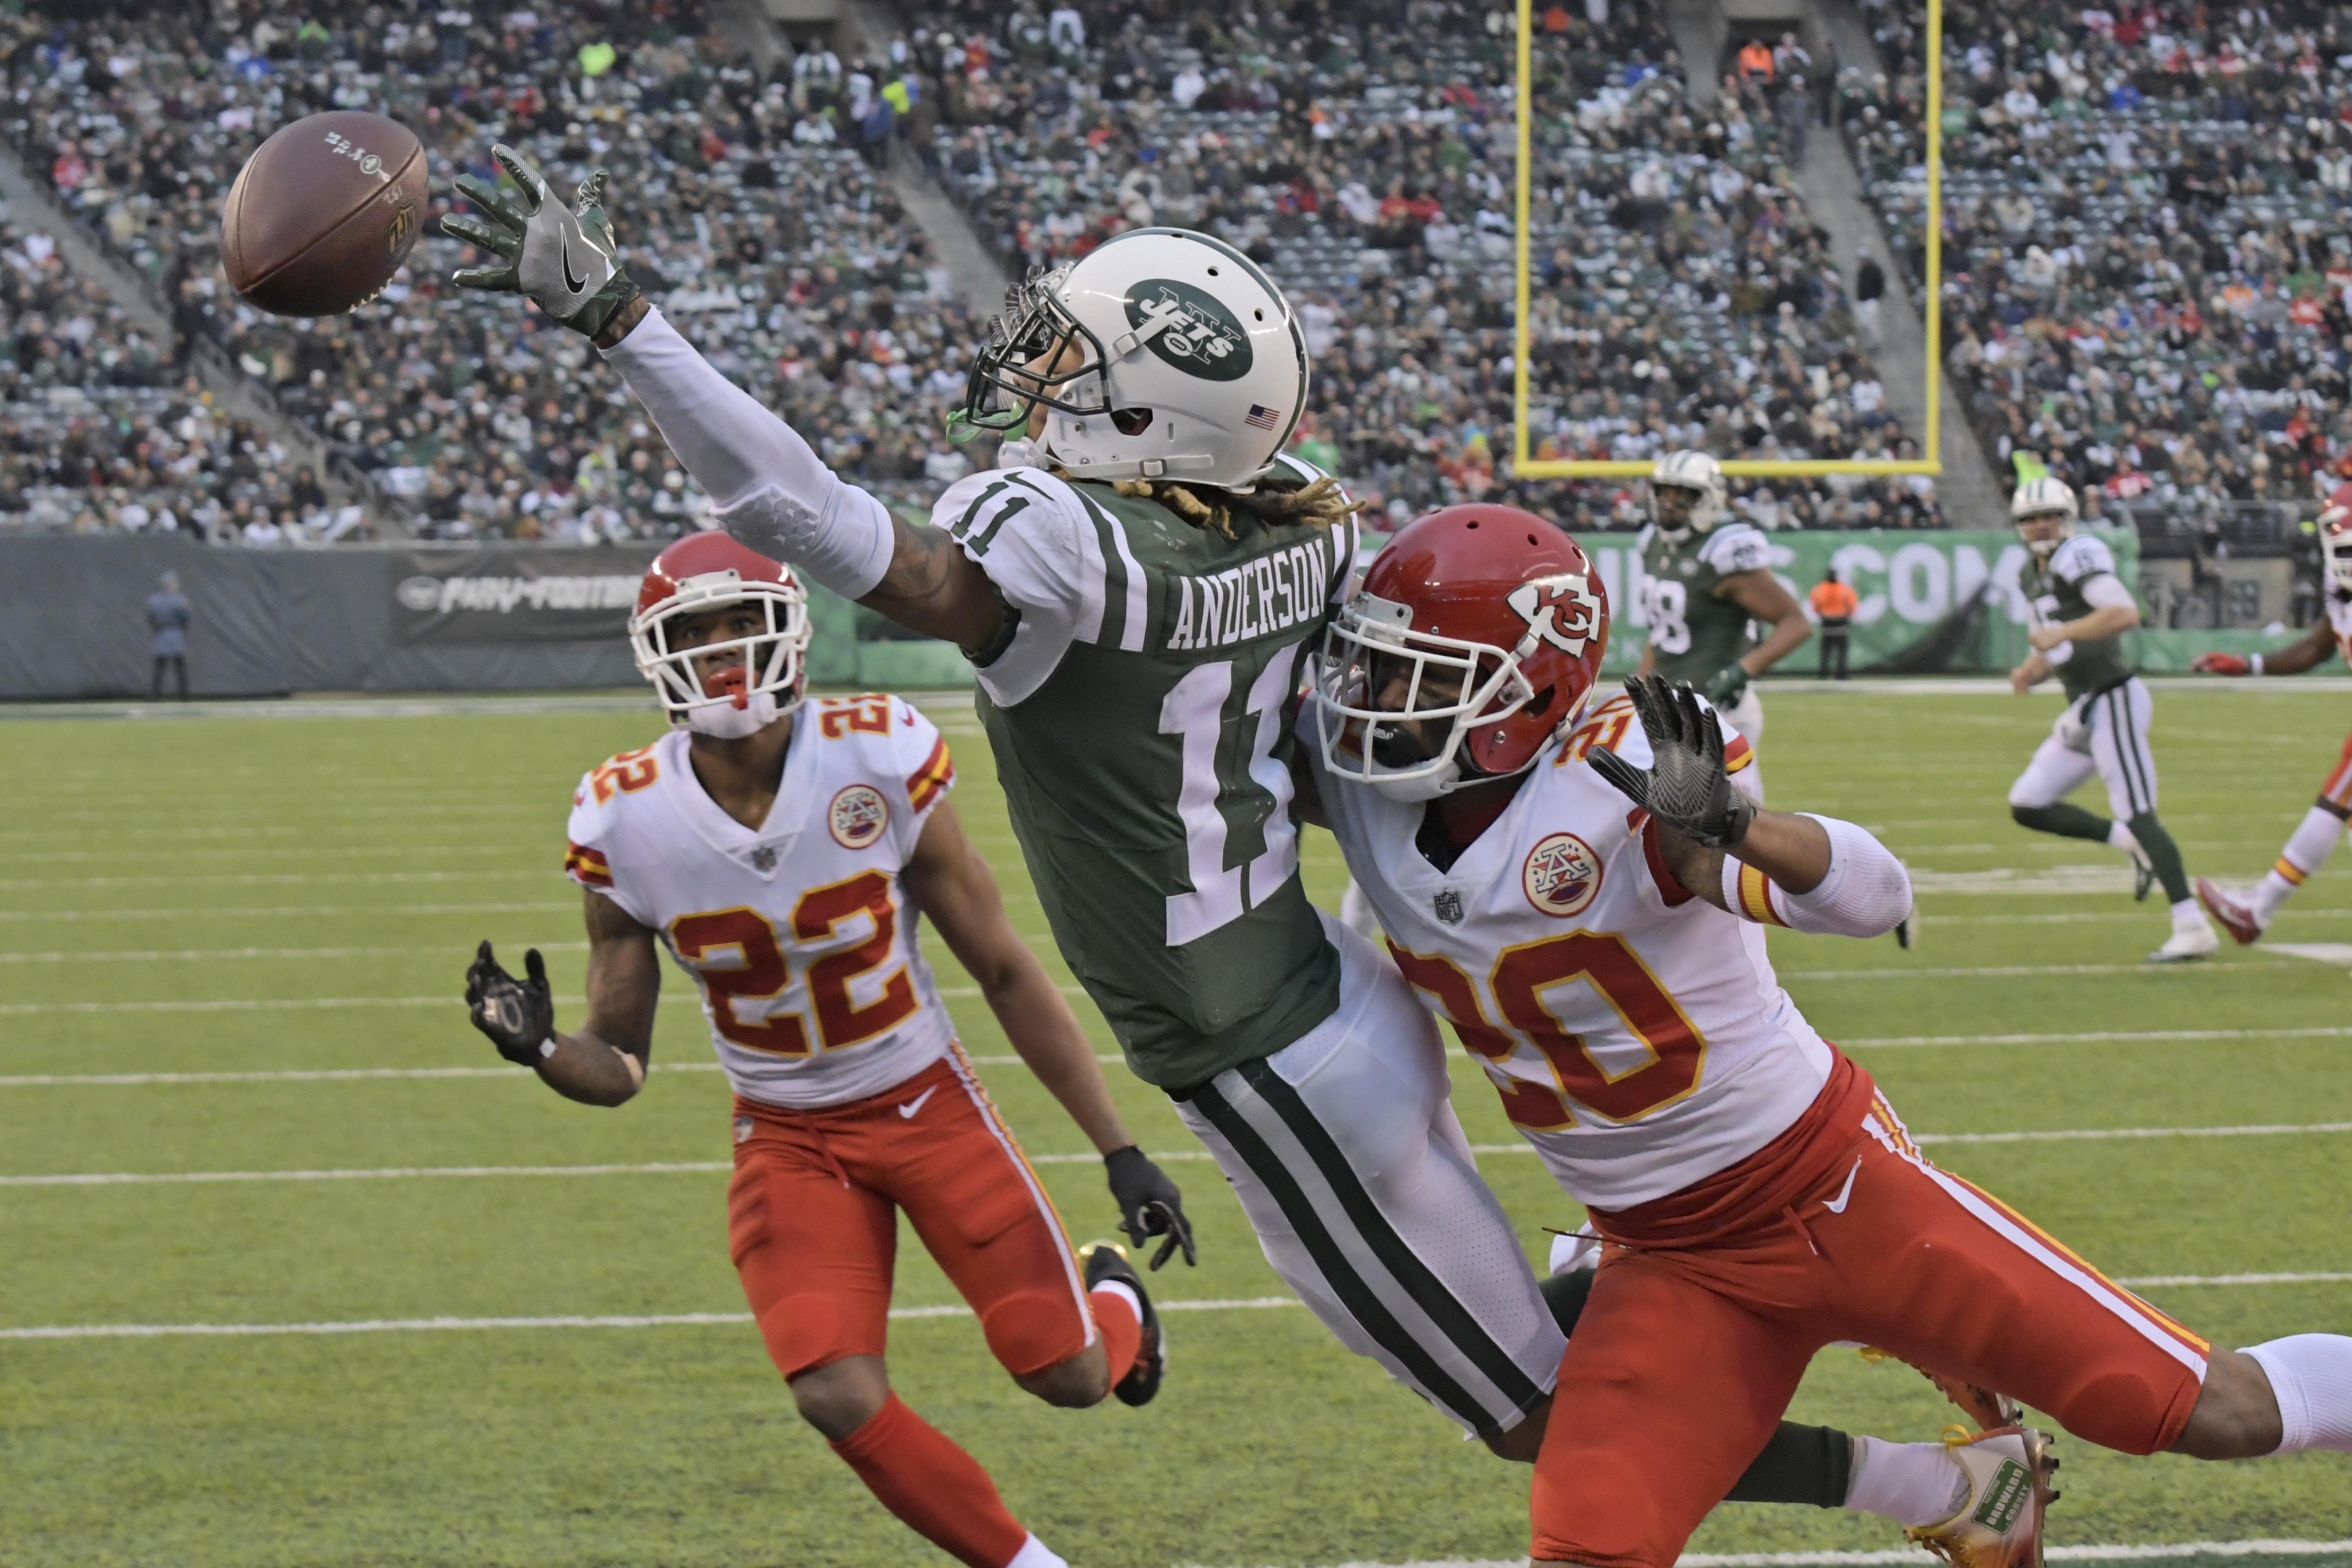 Chiefs_jets_football_07518